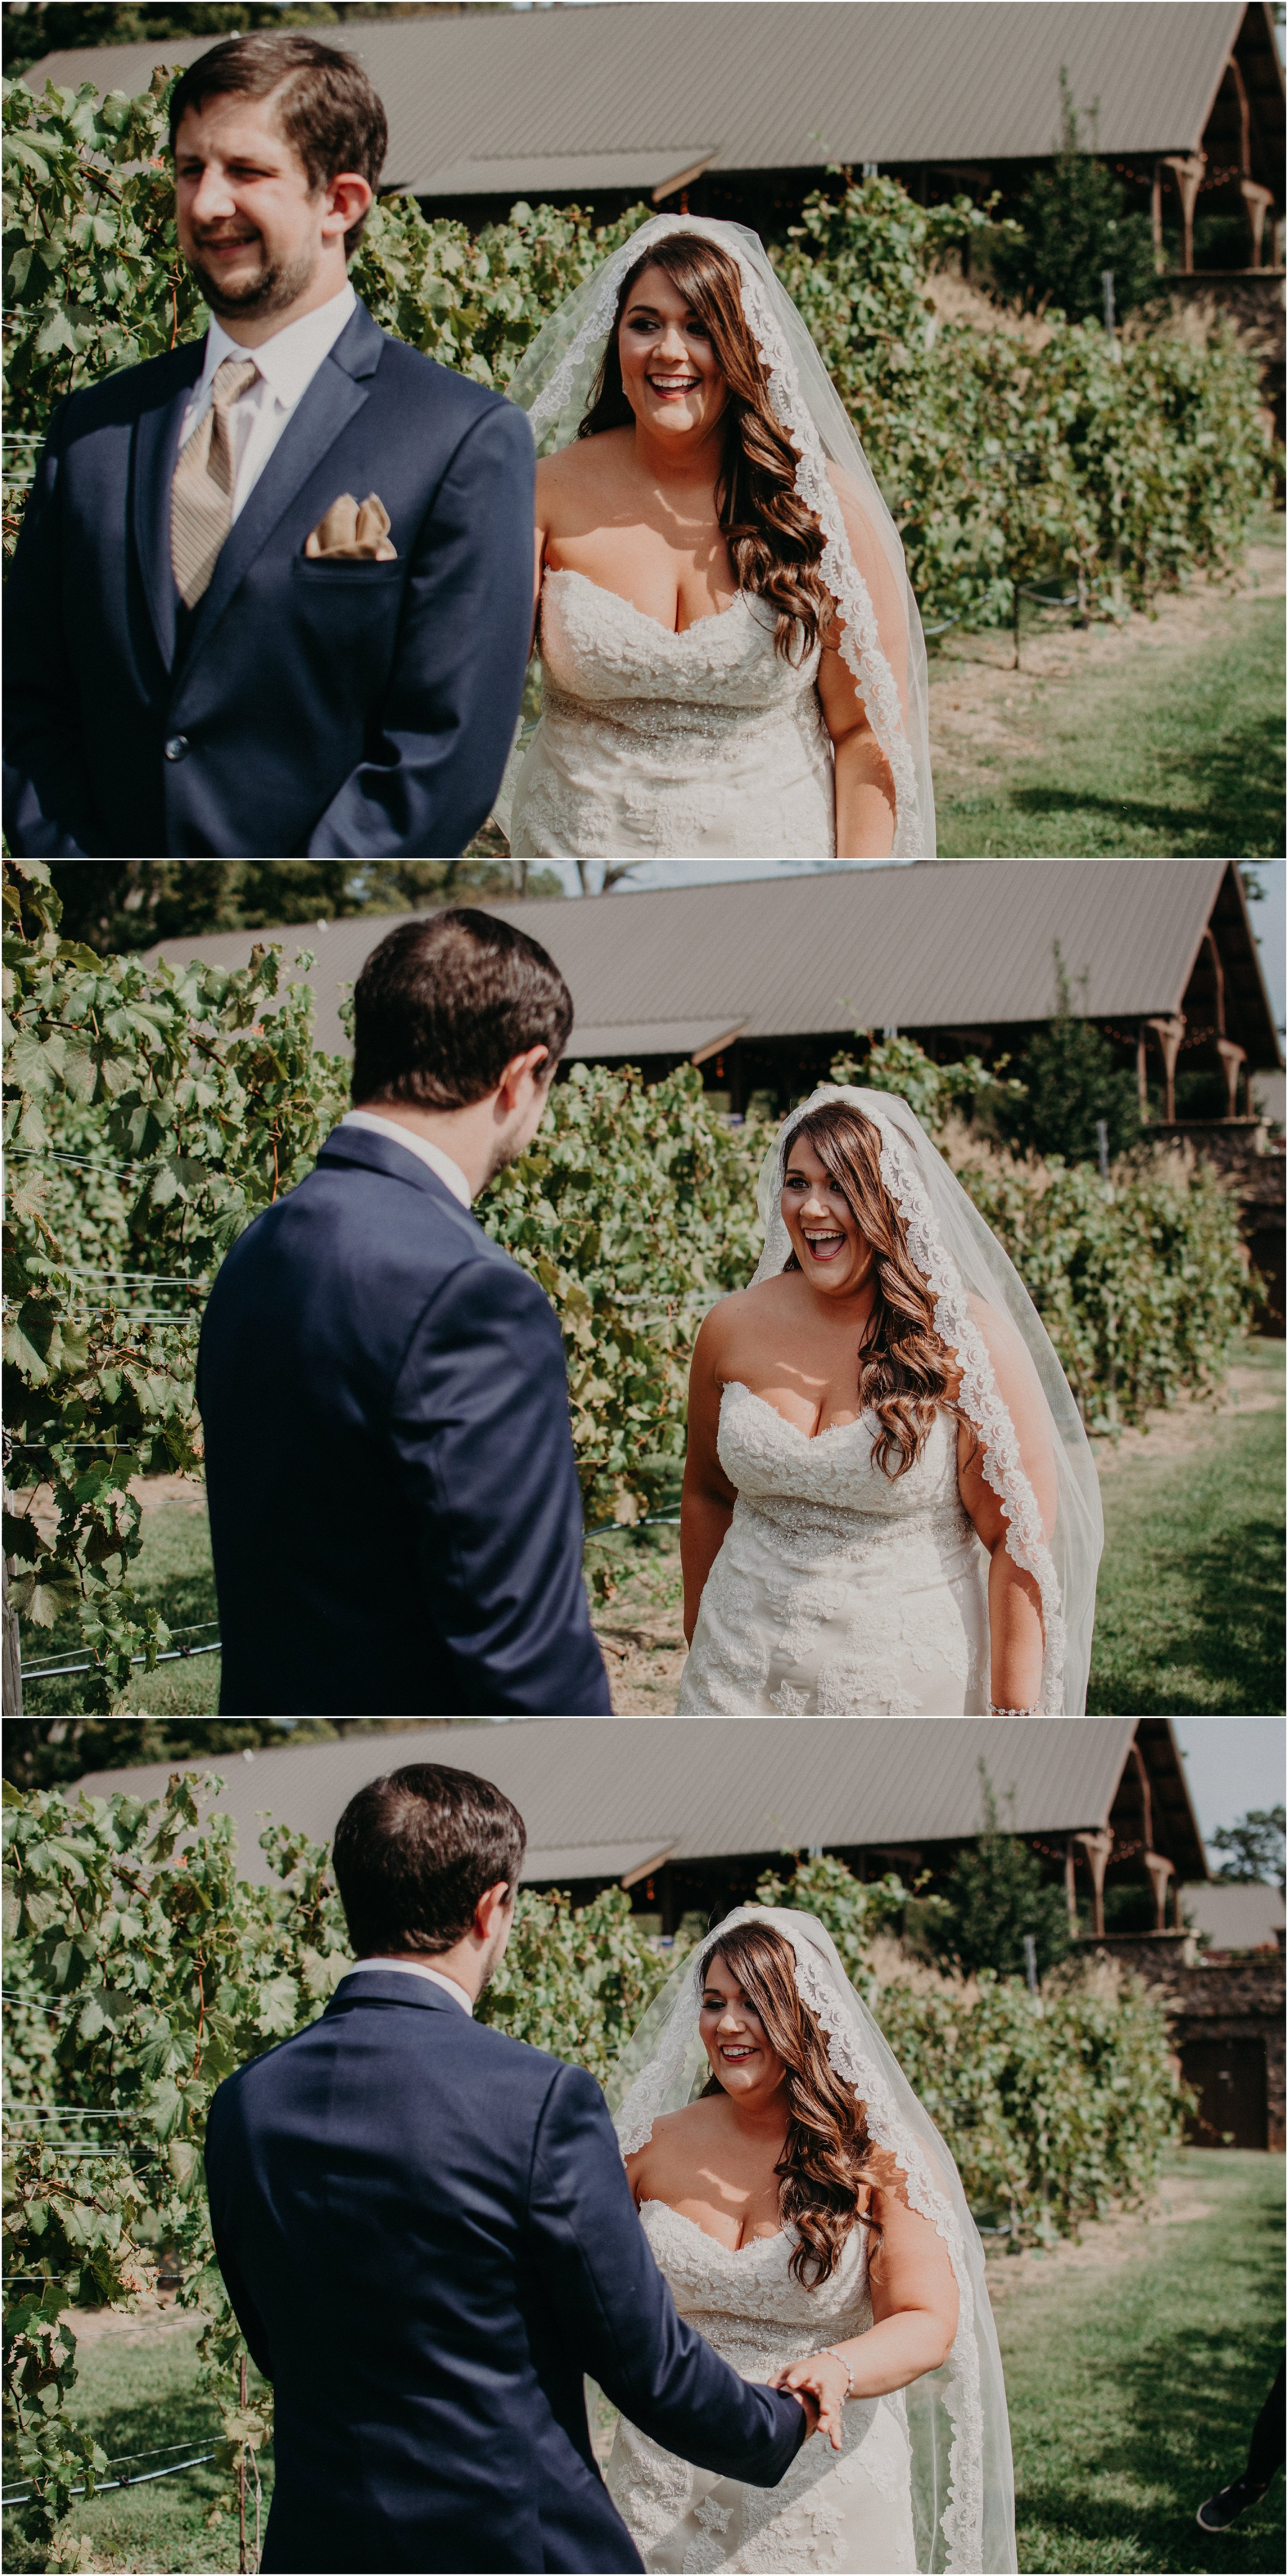 Bride and groom reactions to see each other for the first time on their wedding day